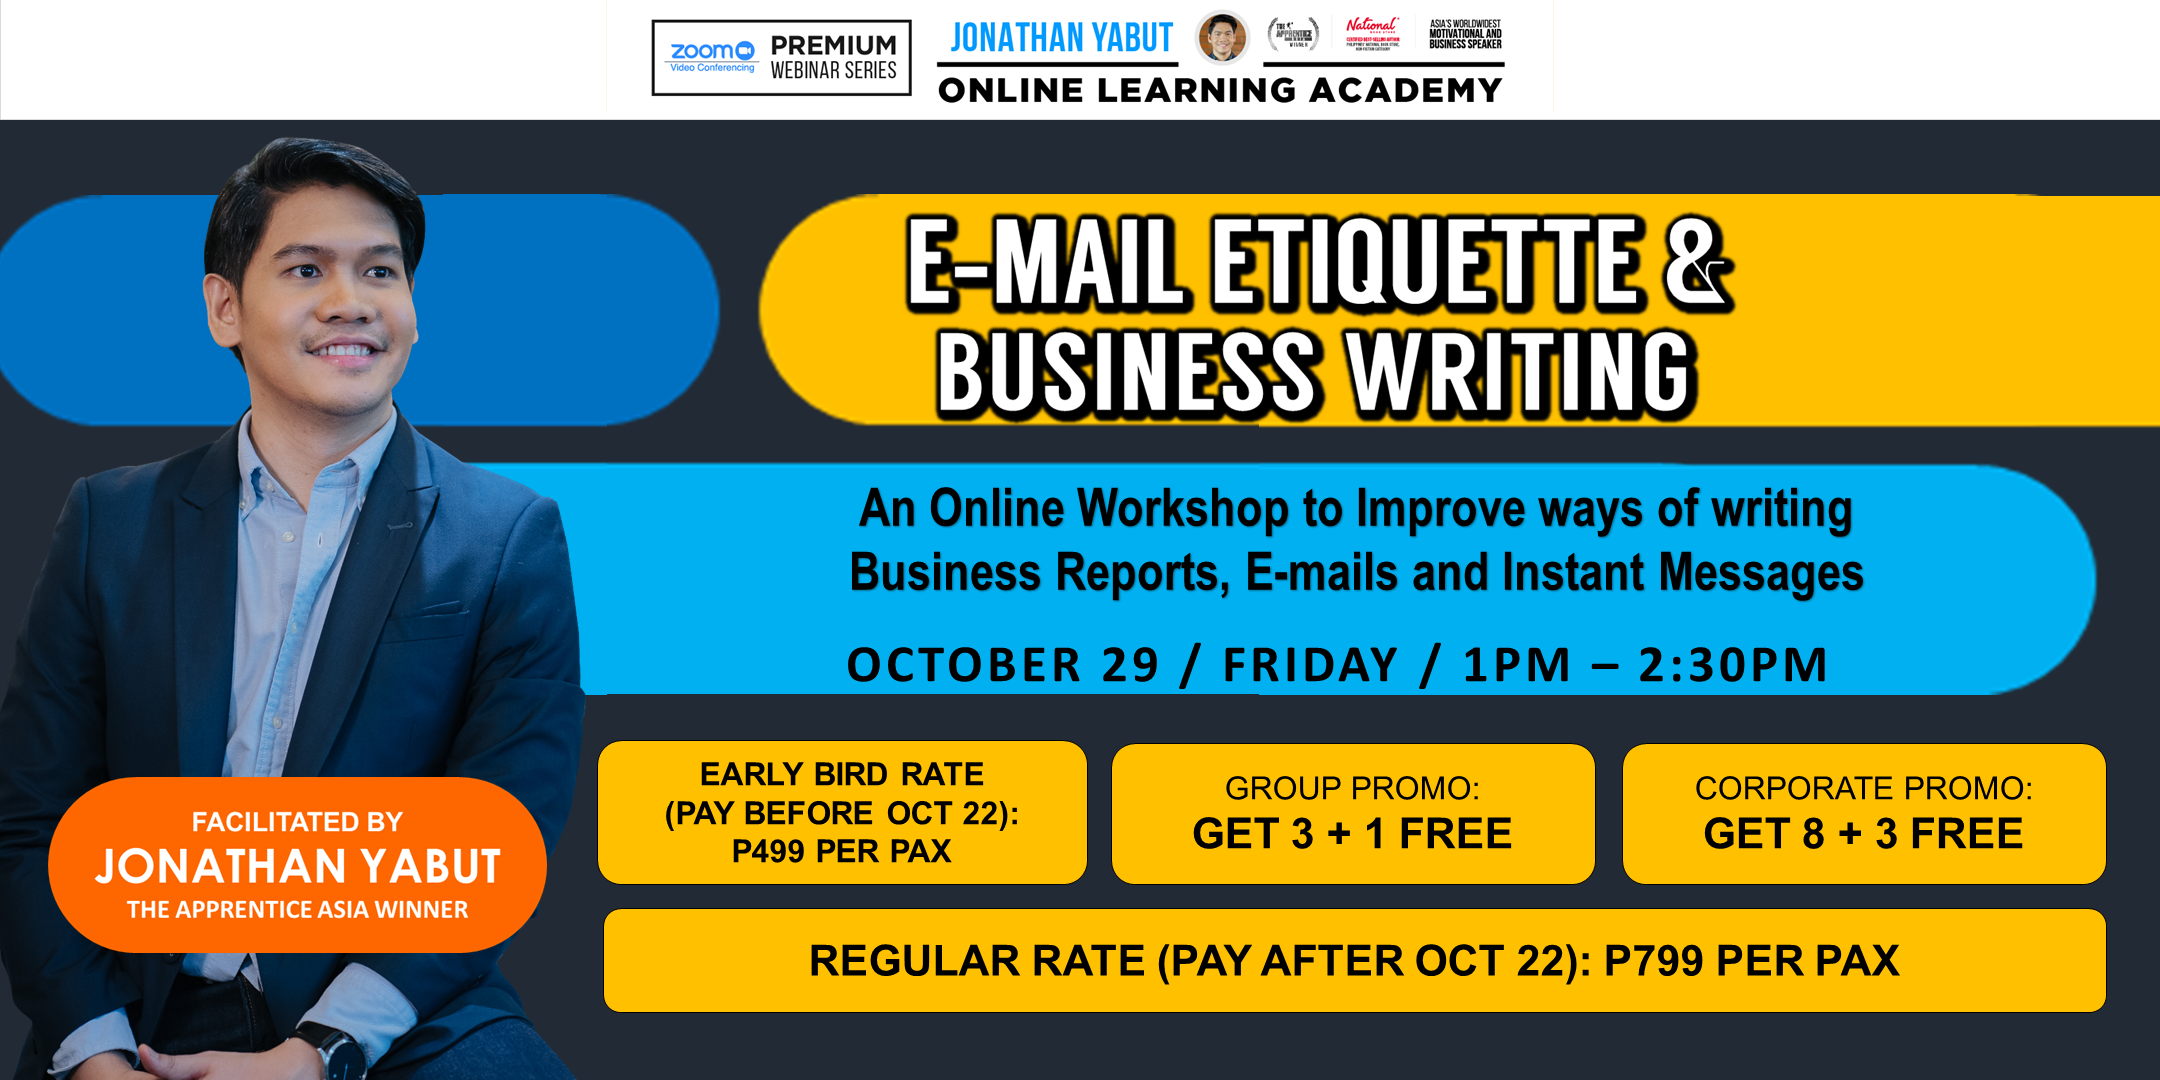 E-mail Etiquette & Business Writing (October 29 / Friday)